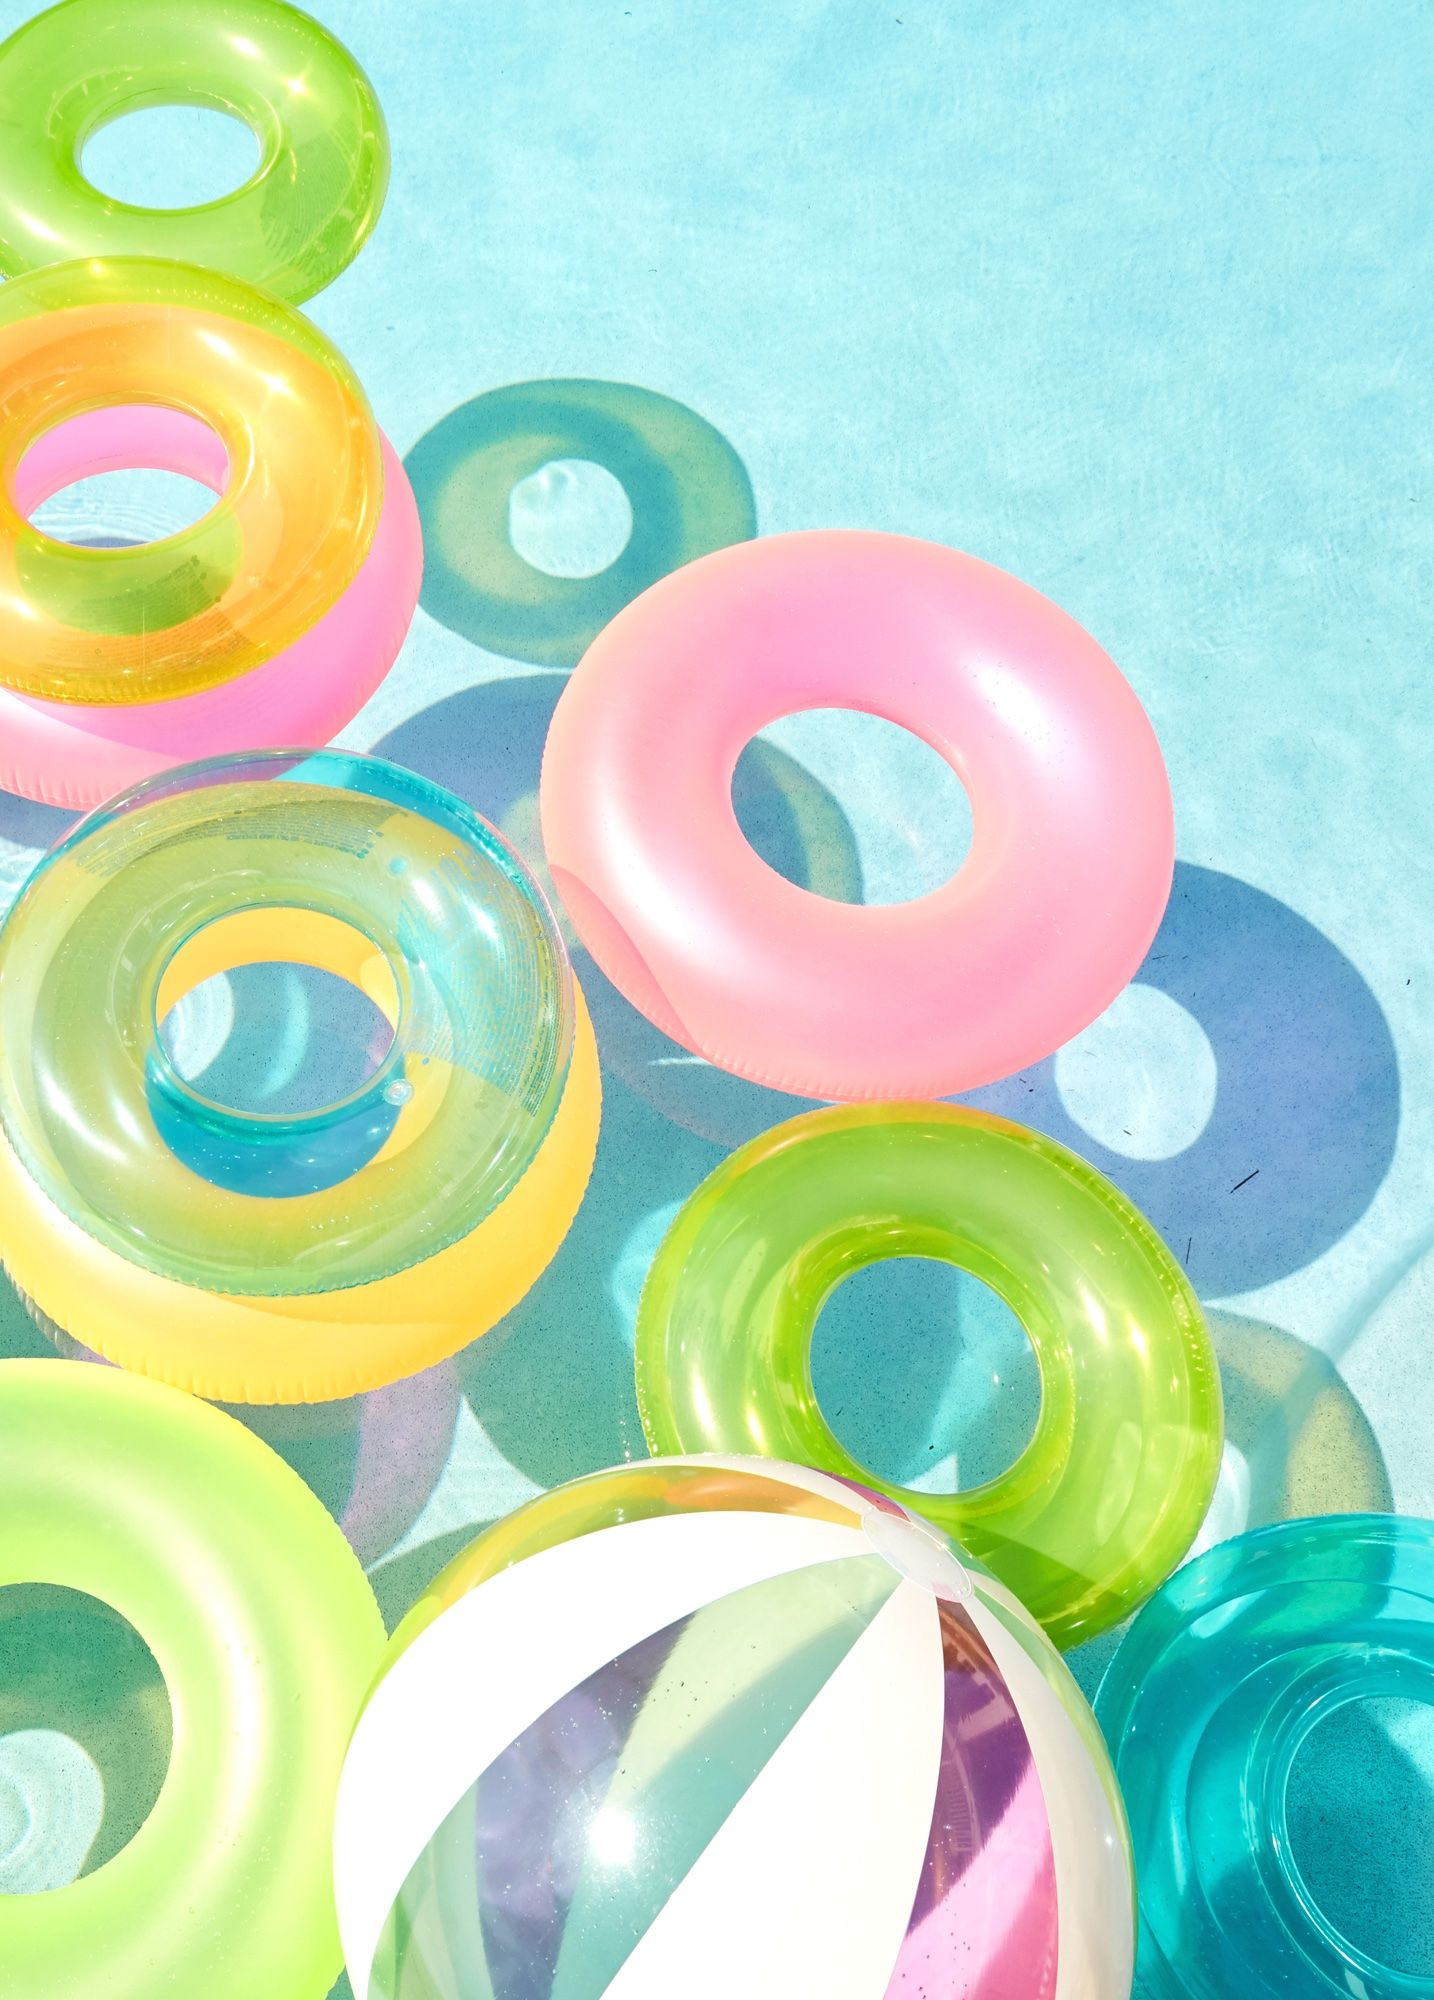 Fun girly pool party inspiration. Loving this fun color combination of intertubes.